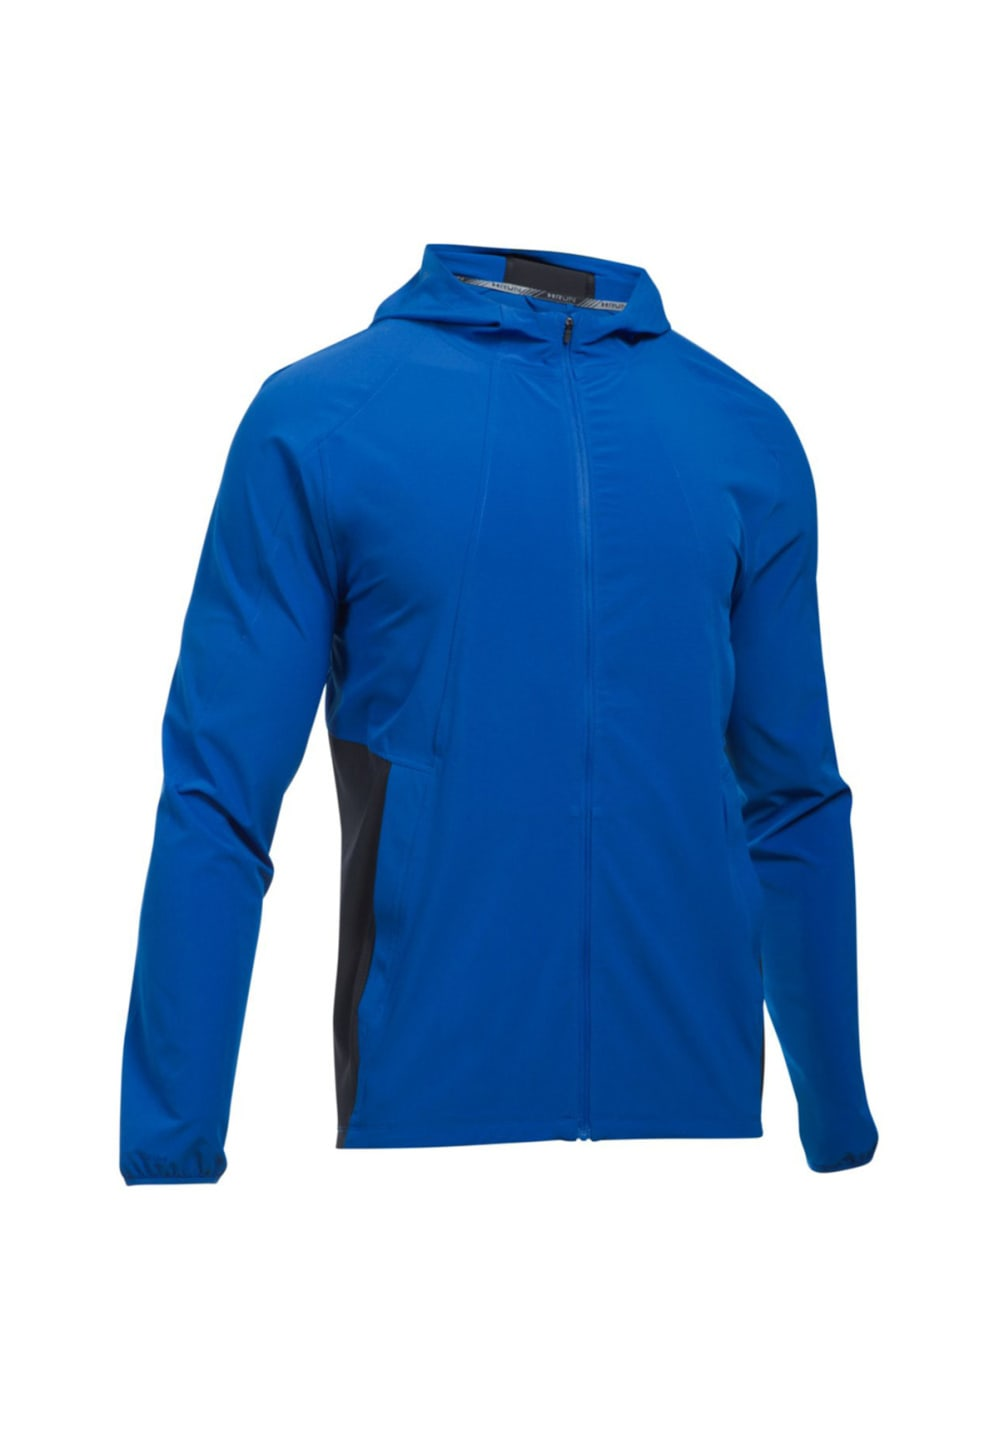 Under Armour Outrun The Storm Mens Running Jacket Blue Jackets & Vests Fitness, Running & Yoga